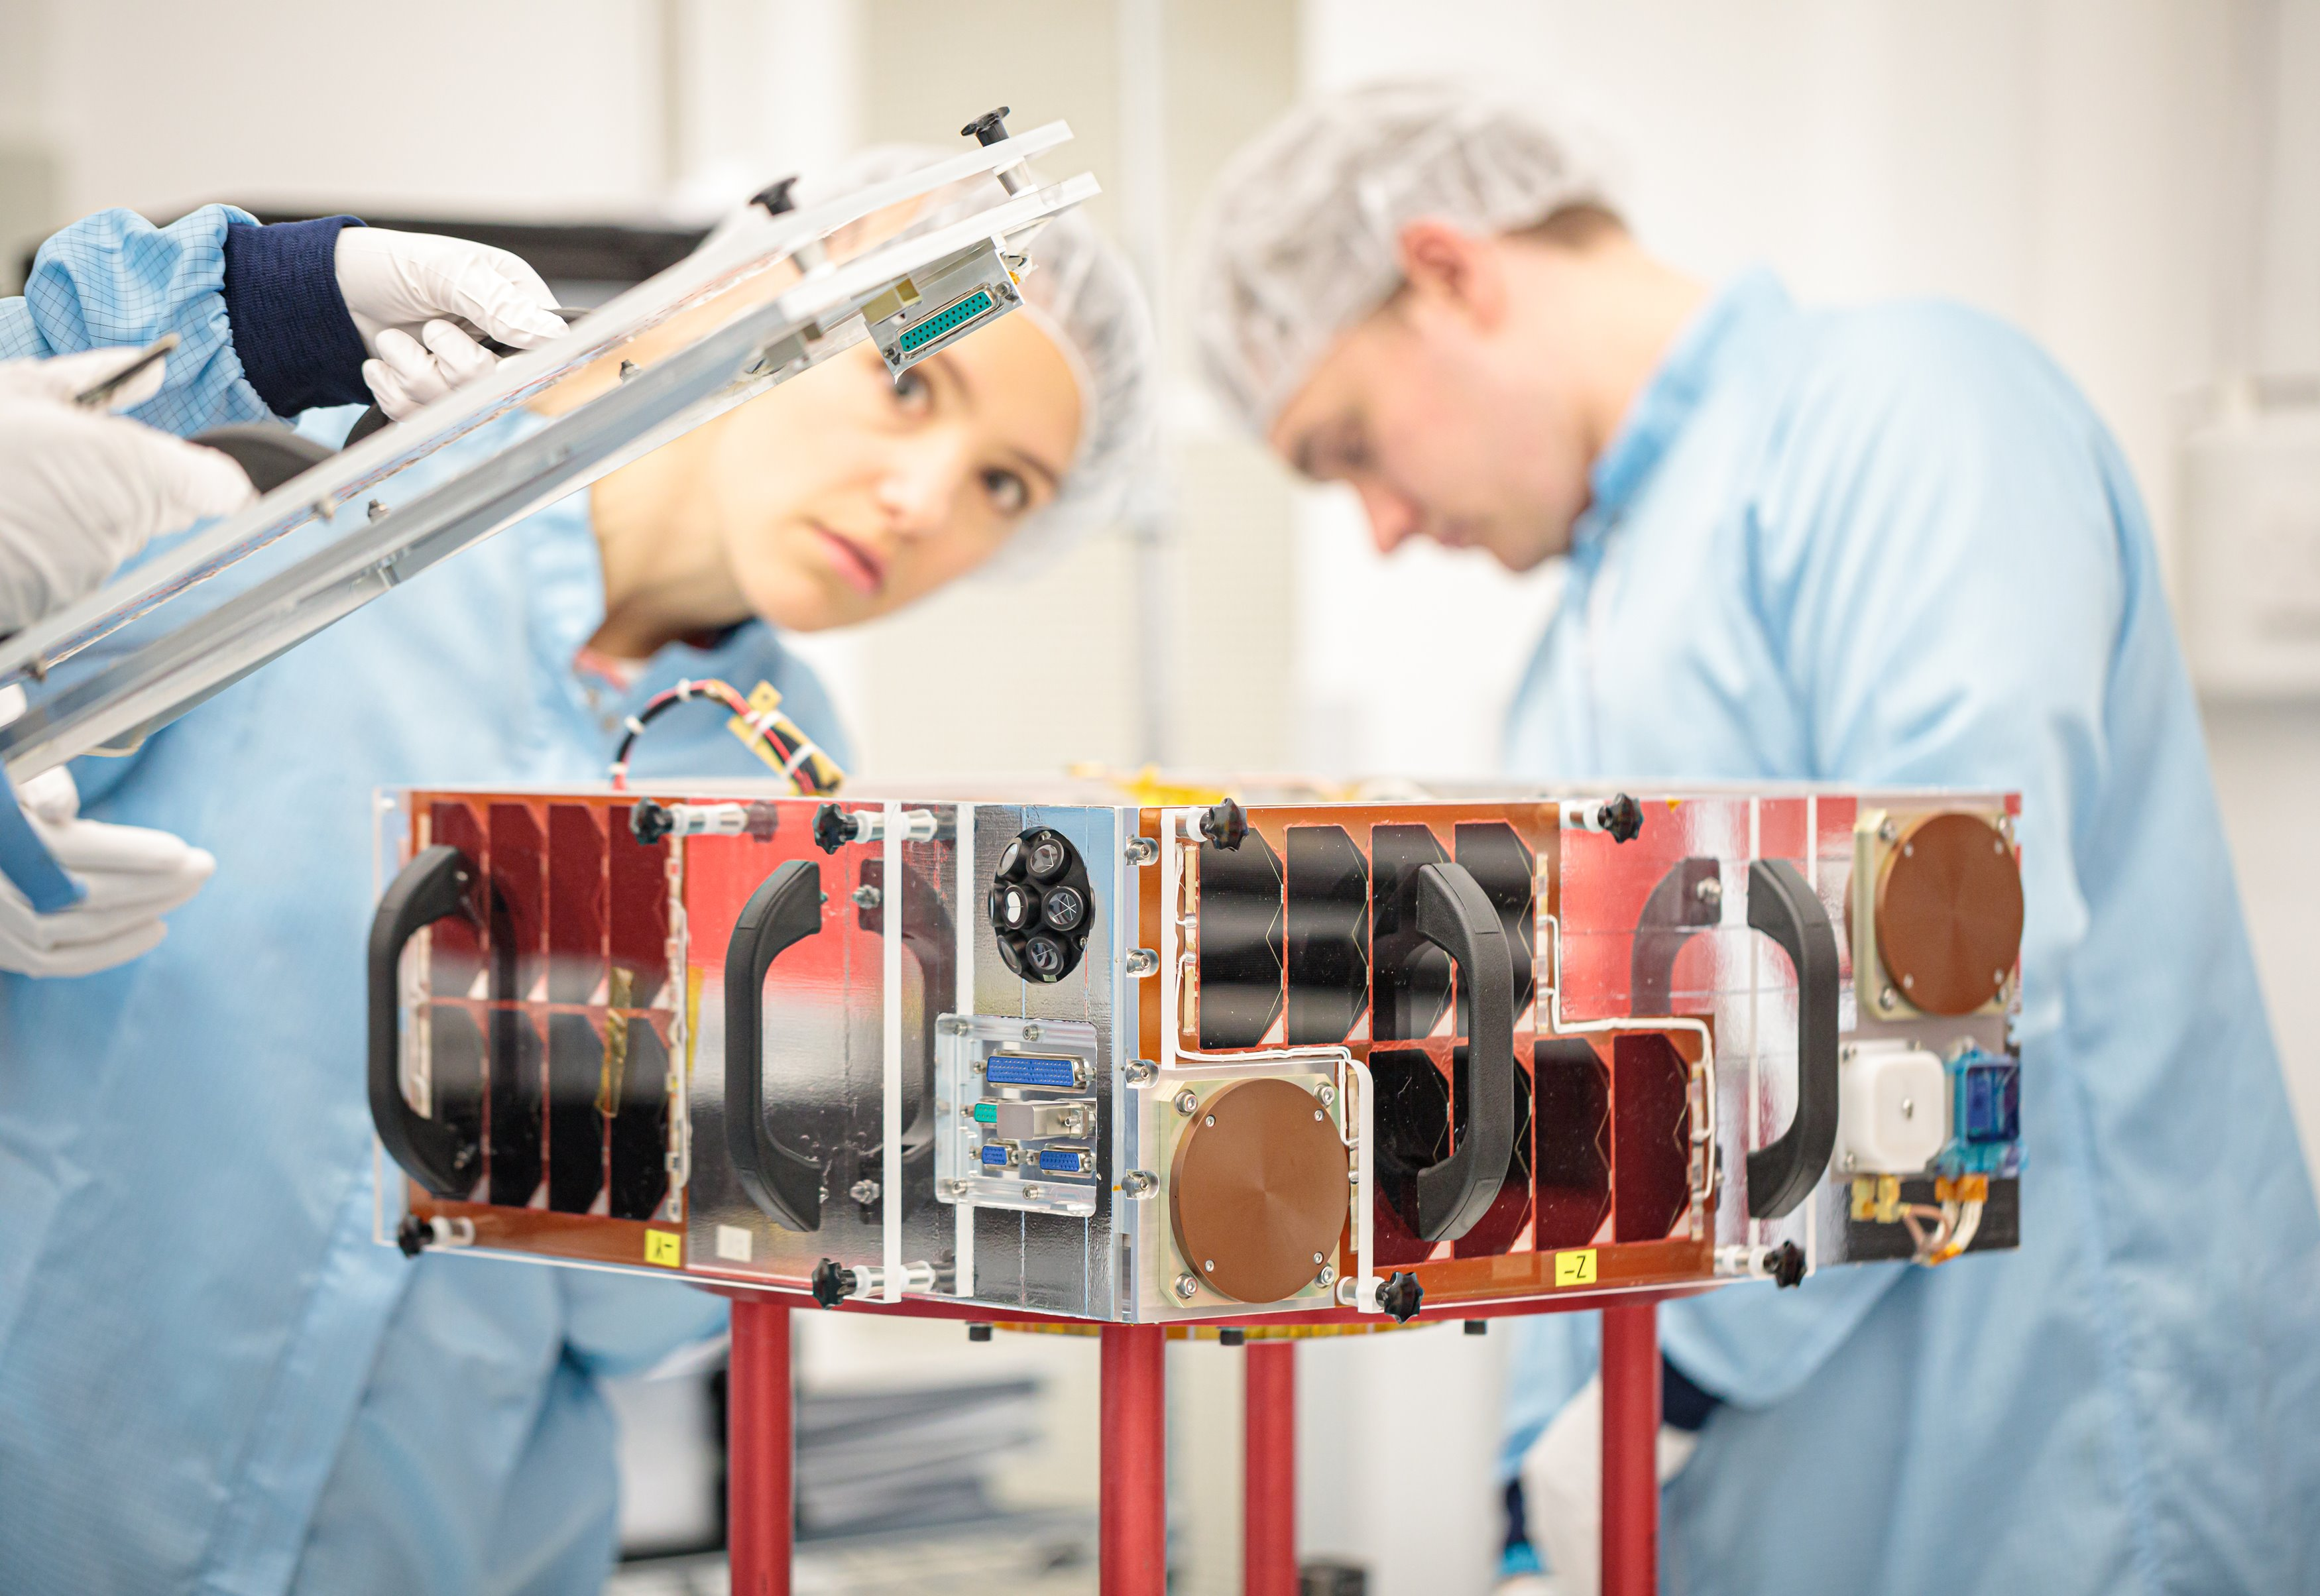 ELSA-d Target satellite during final assembly at SSTL. Credit SSTL/Kathryn Graham